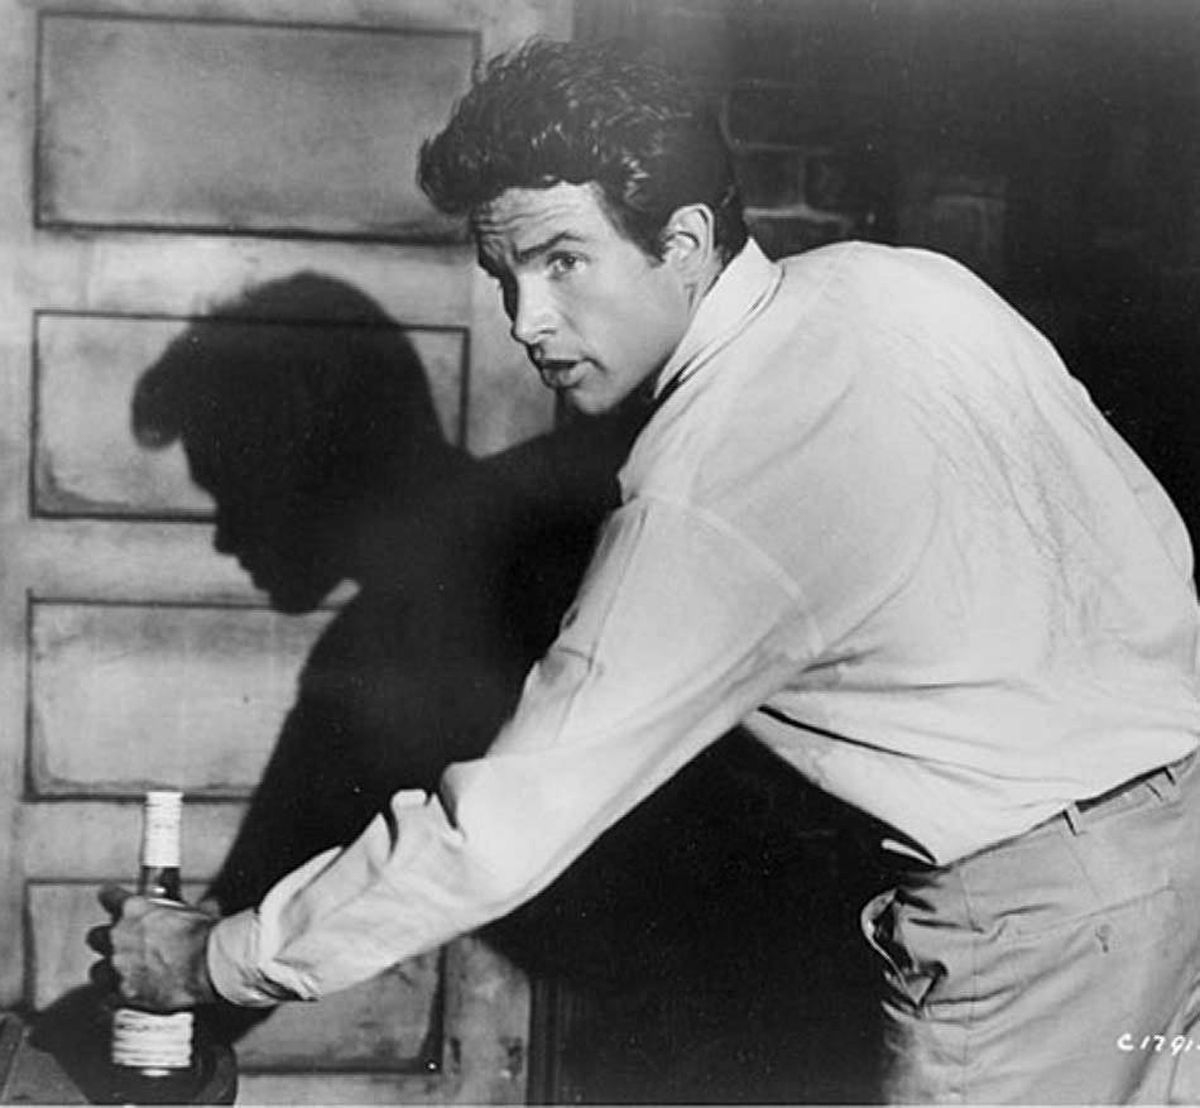 MOVIE All Fall Down TCM, 12:15 a.m. ET; 9:15 p.m. PT Warren Beatty spent the first half of his career playing a bounder, thanks in large part to his convincing performance in this torrid 1962 drama. Directed by John Frankenheimer, the 1962 film casts Beatty as the handsome young dastard Berry-Berry (yep, that's his name), who moves from one female conquest to the next and has no compunction whatsoever about fleecing them in the process. Berry-Berry has no time for his alcoholic father (Karl Malden) or controlling mother (Angela Lansbury), but maintains contact with his younger brother Clinton (Brandon de Wilde). The brotherly bond is torn asunder when Berry-Berry attempts to seduce the lovely Echo (Eva Marie Saint), who has already captured Clinton's heart.